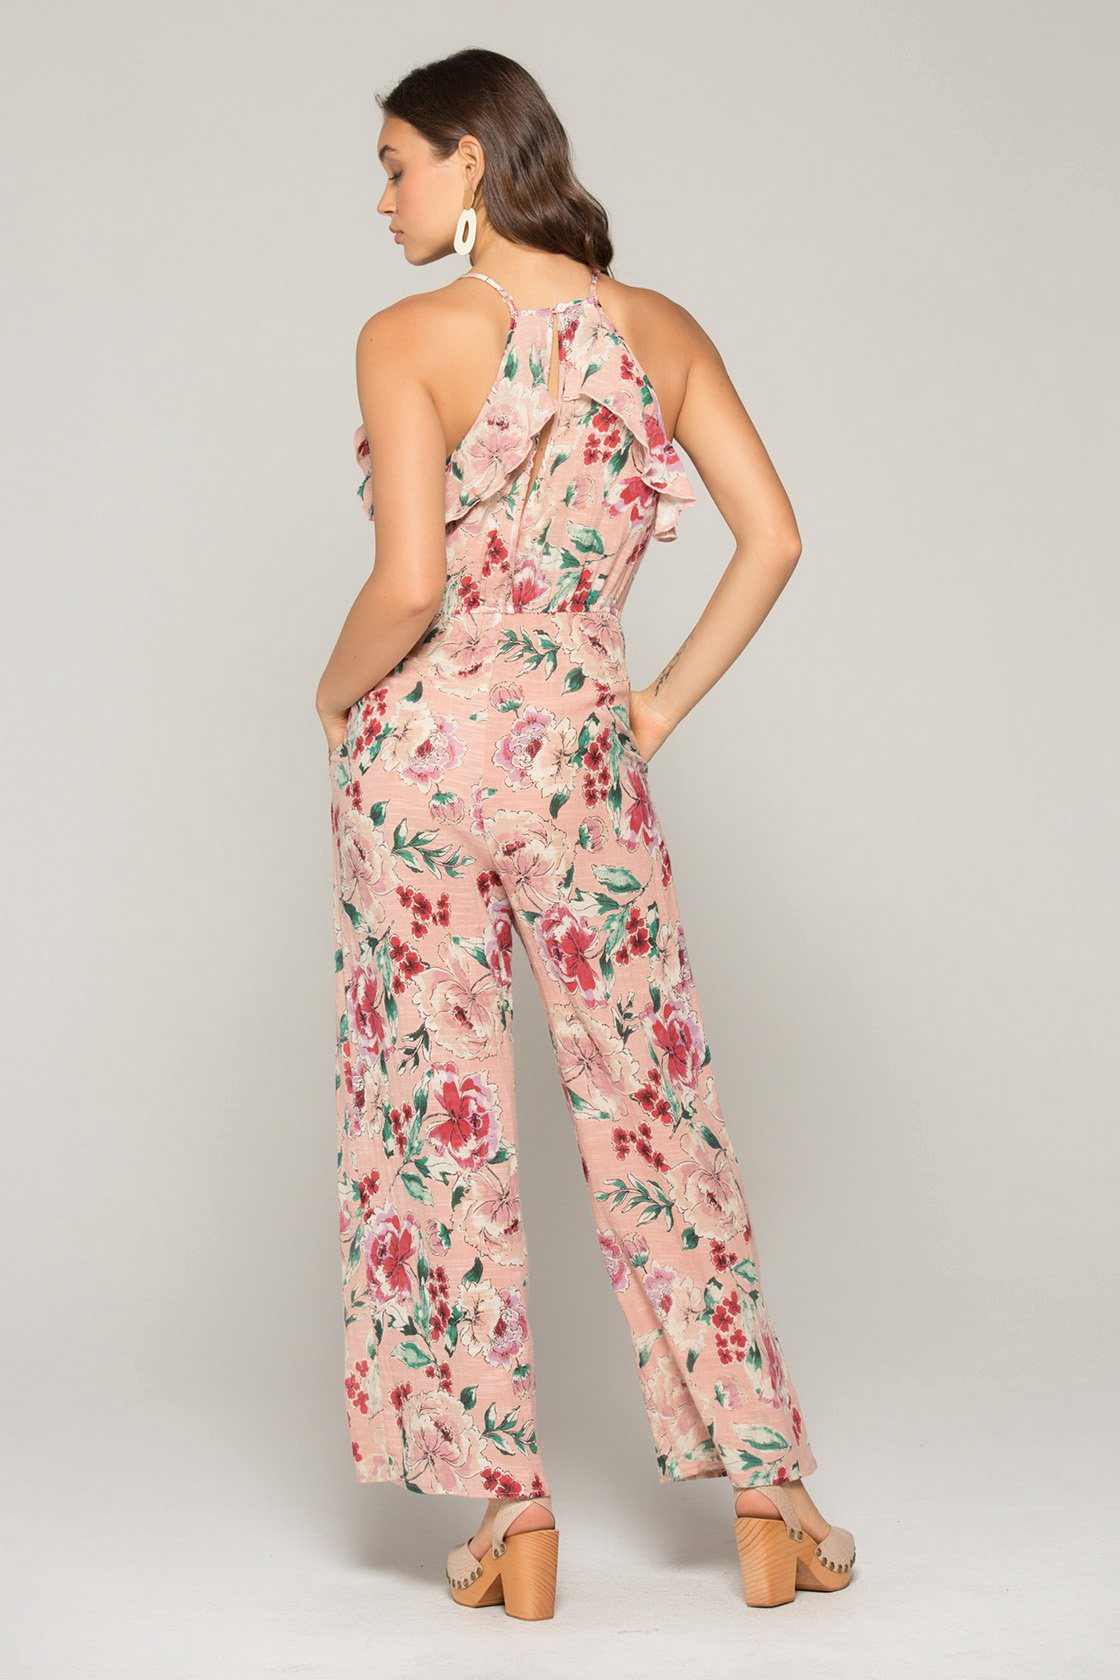 limited guantity exceptional range of styles good texture Pink Floral Jumpsuit w Ruffle